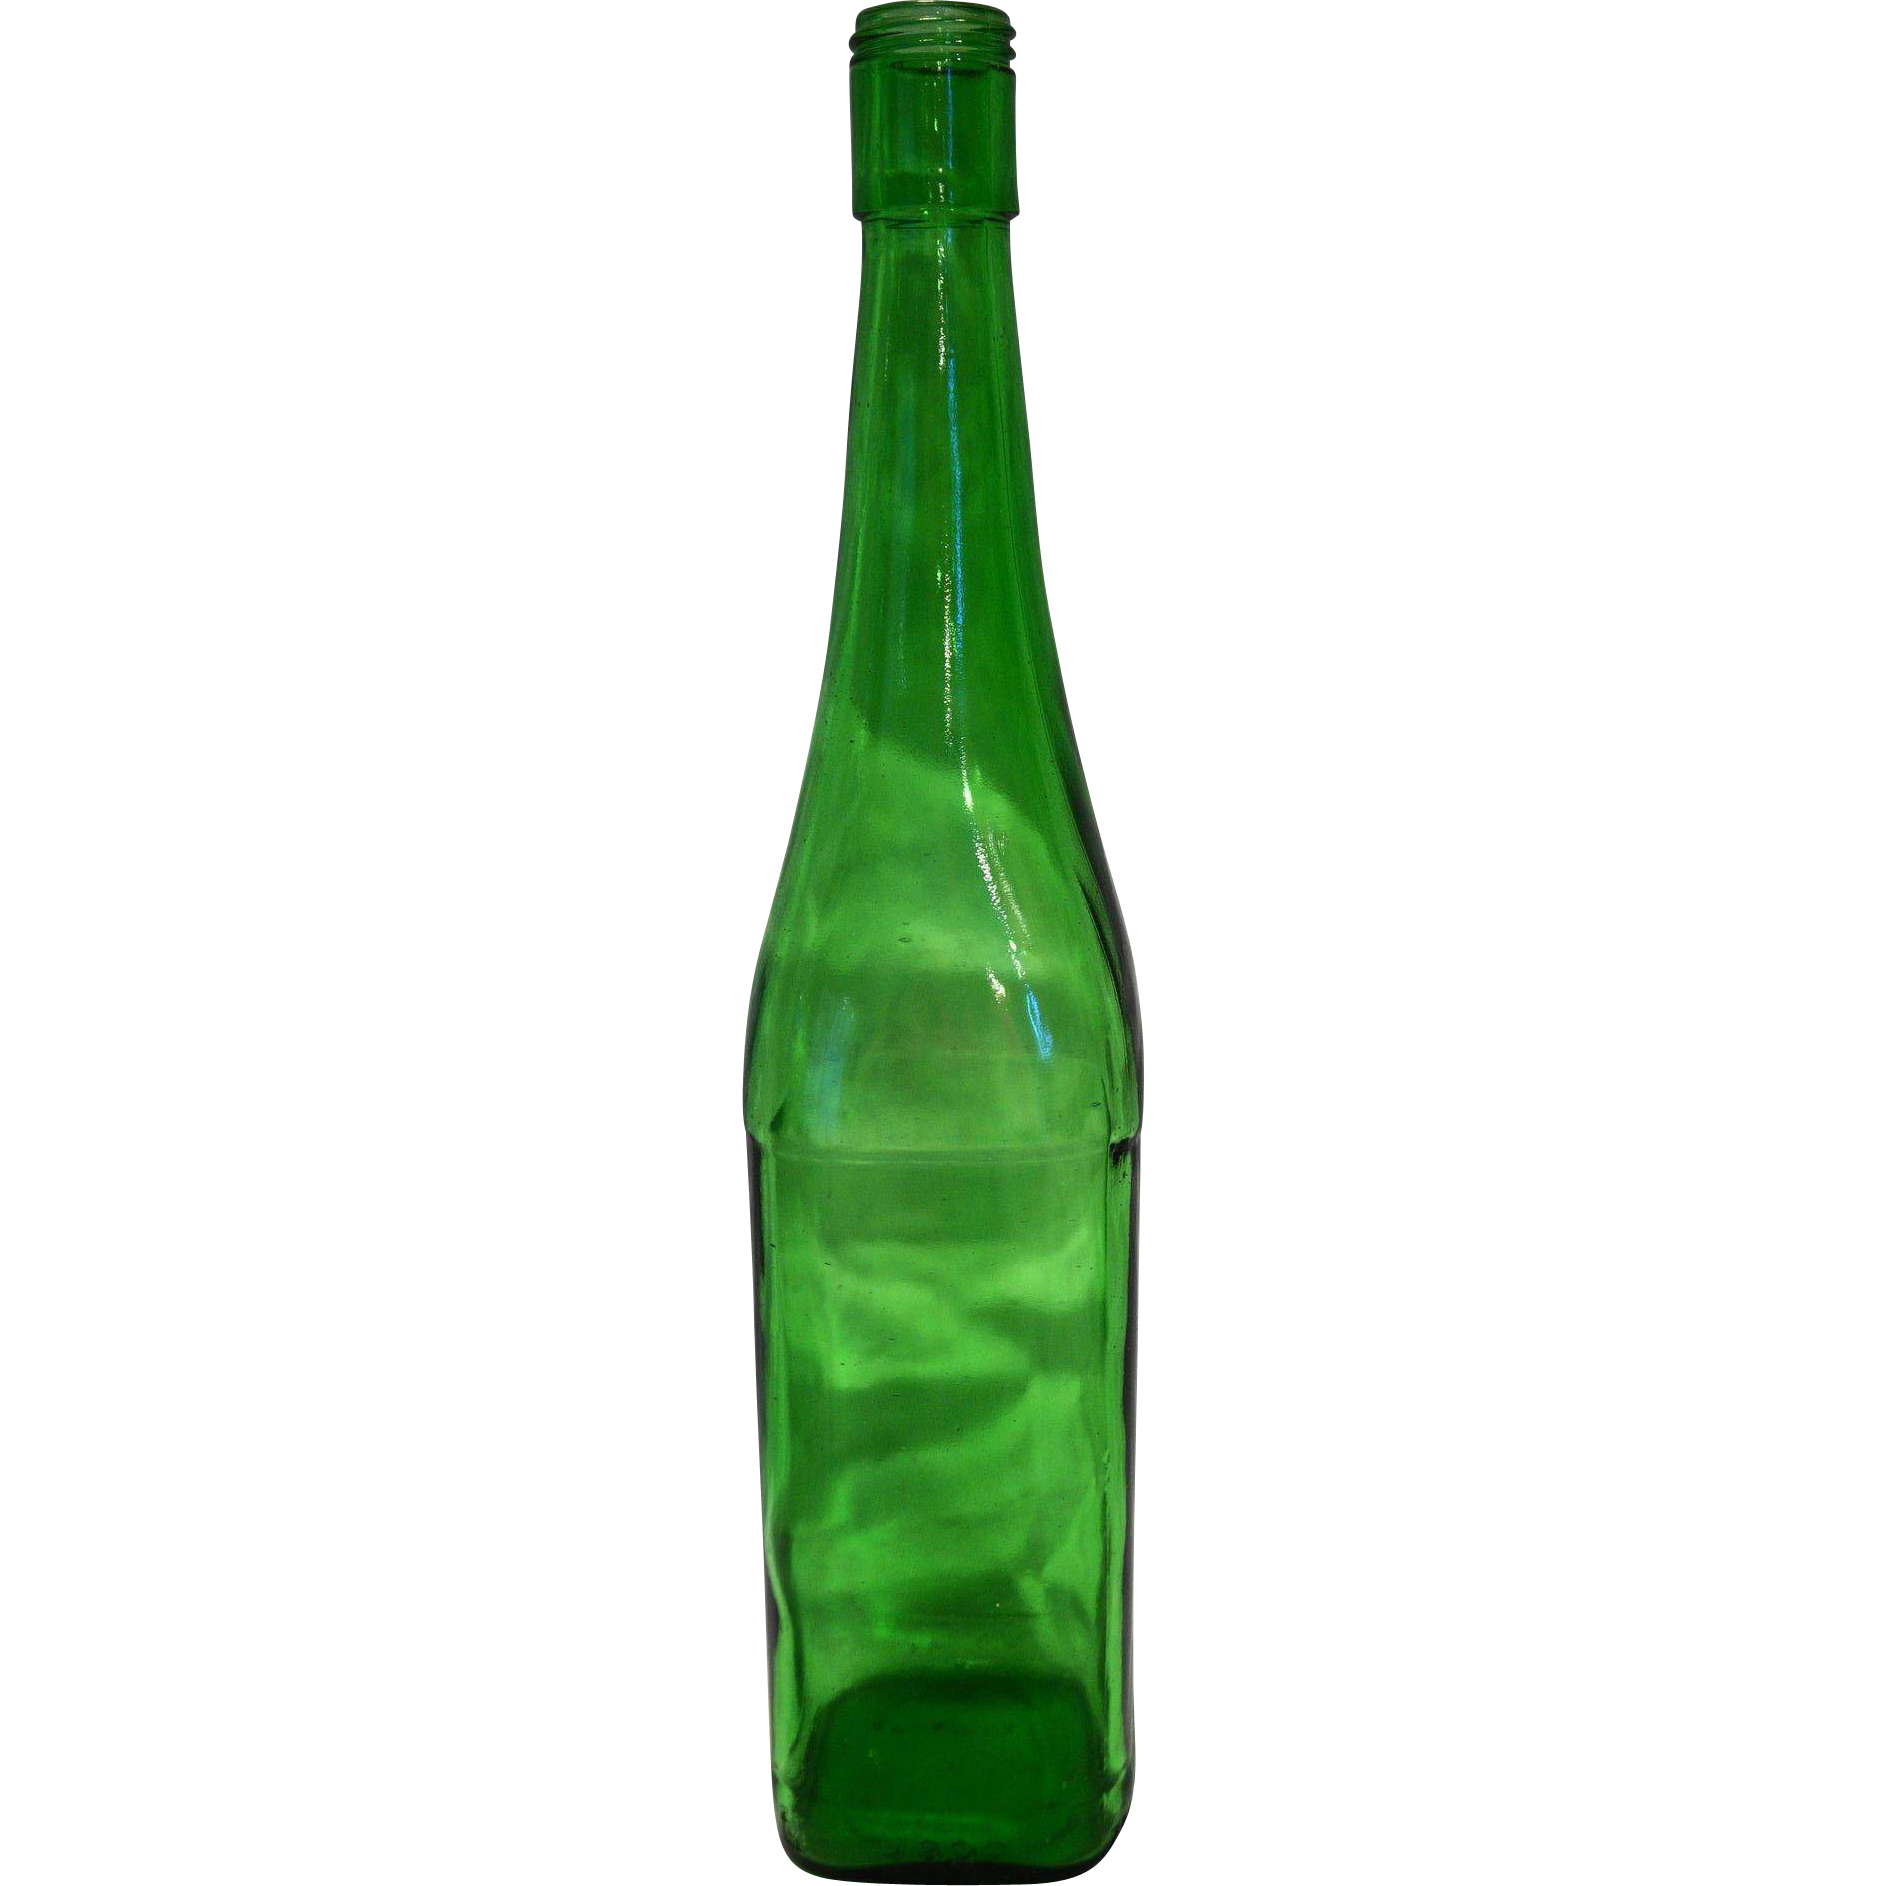 Yago Rioja Santiago Green Onion Neck Vintage Wine Bottle Square Base